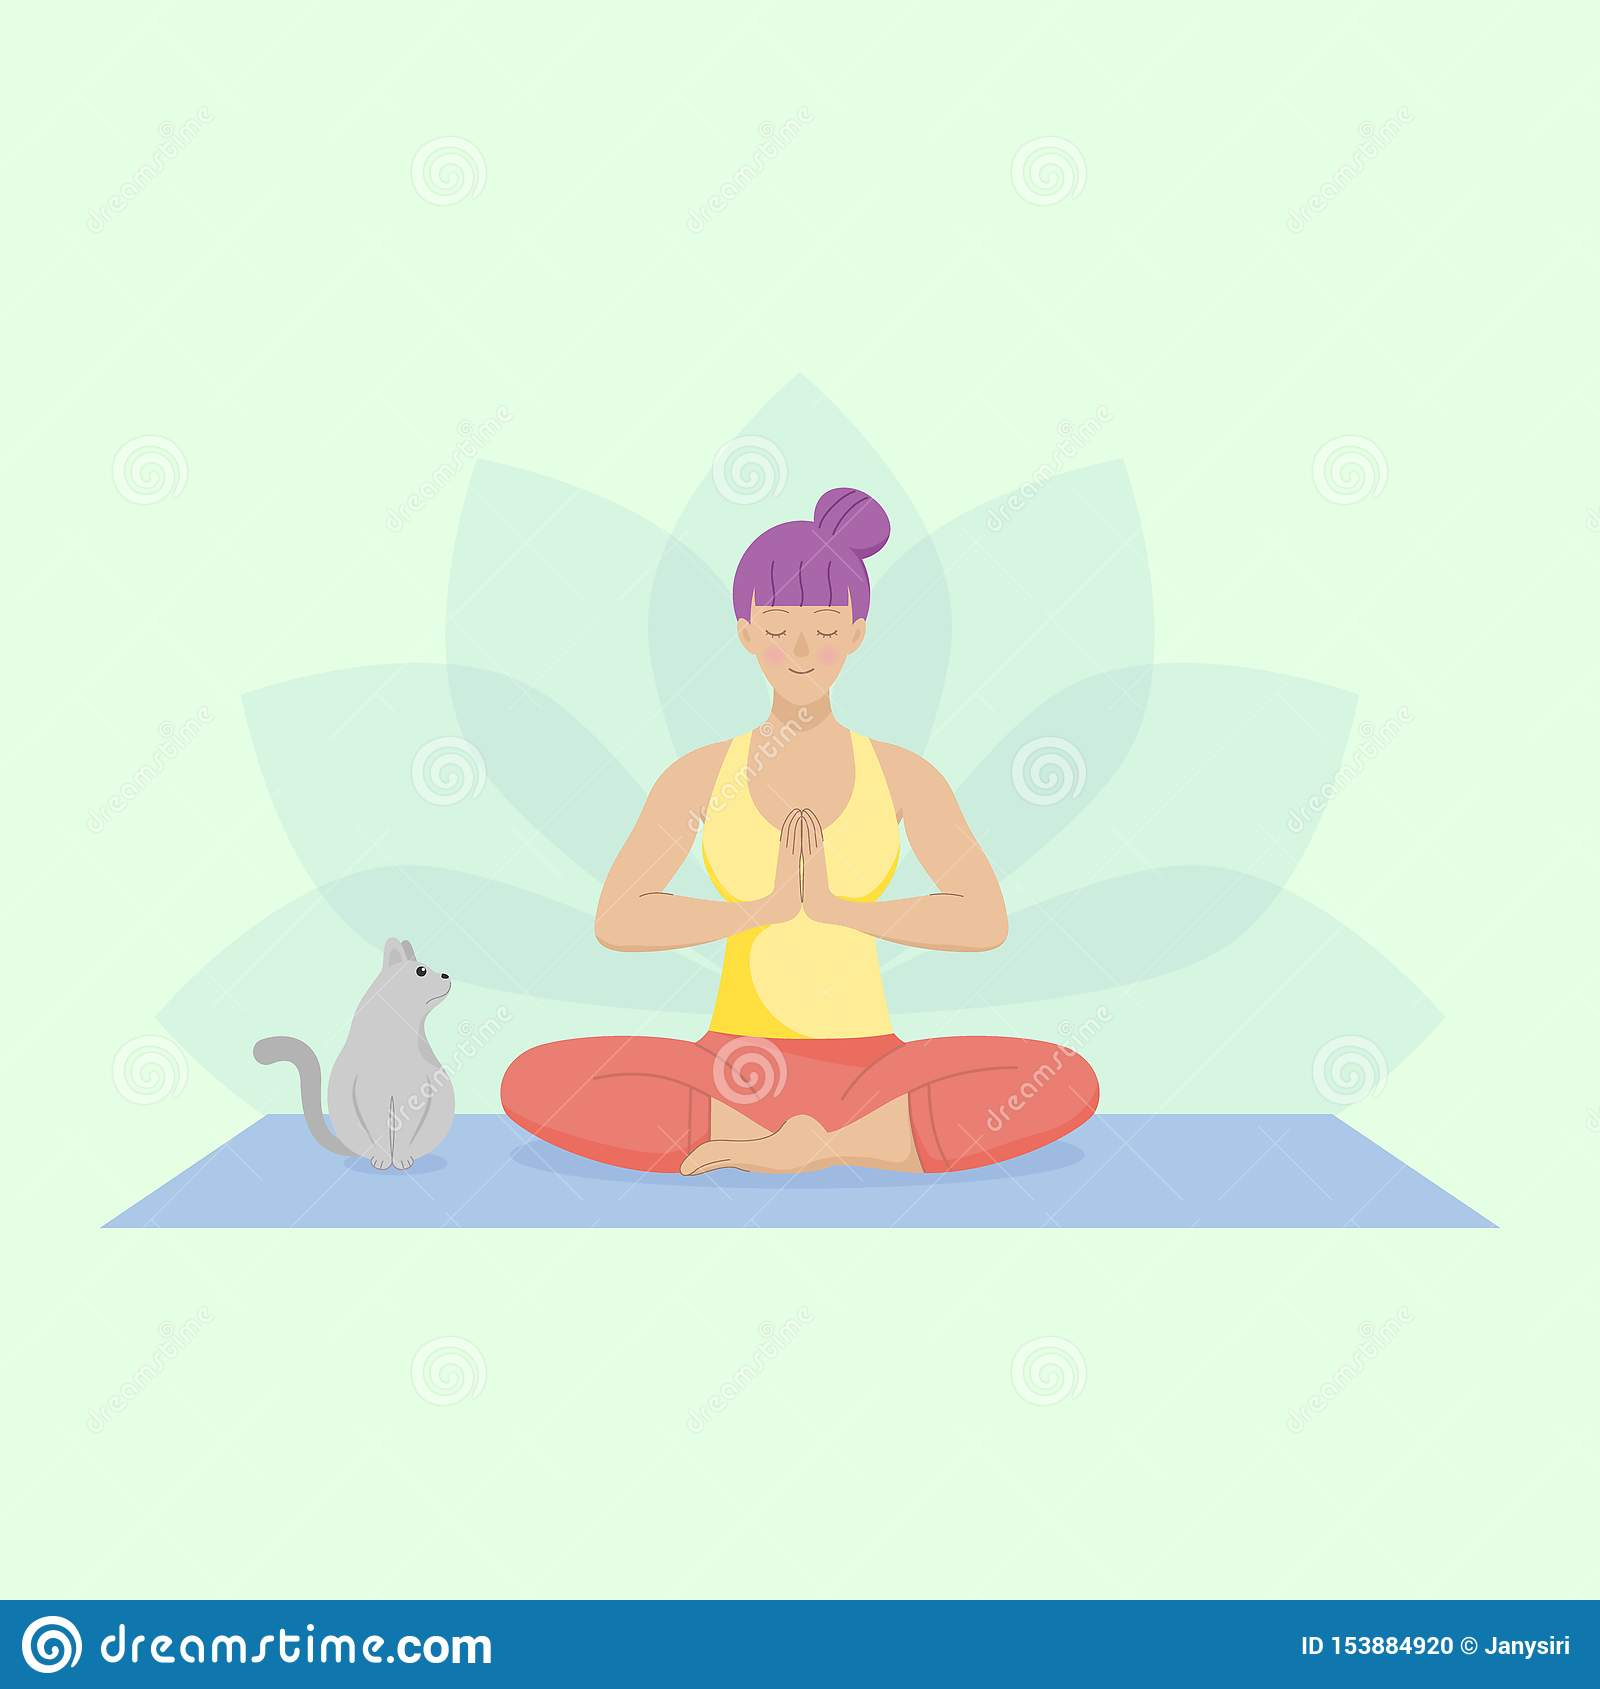 Flat woman practicing easy yoga. Sitting down on the mat with a cute cat.